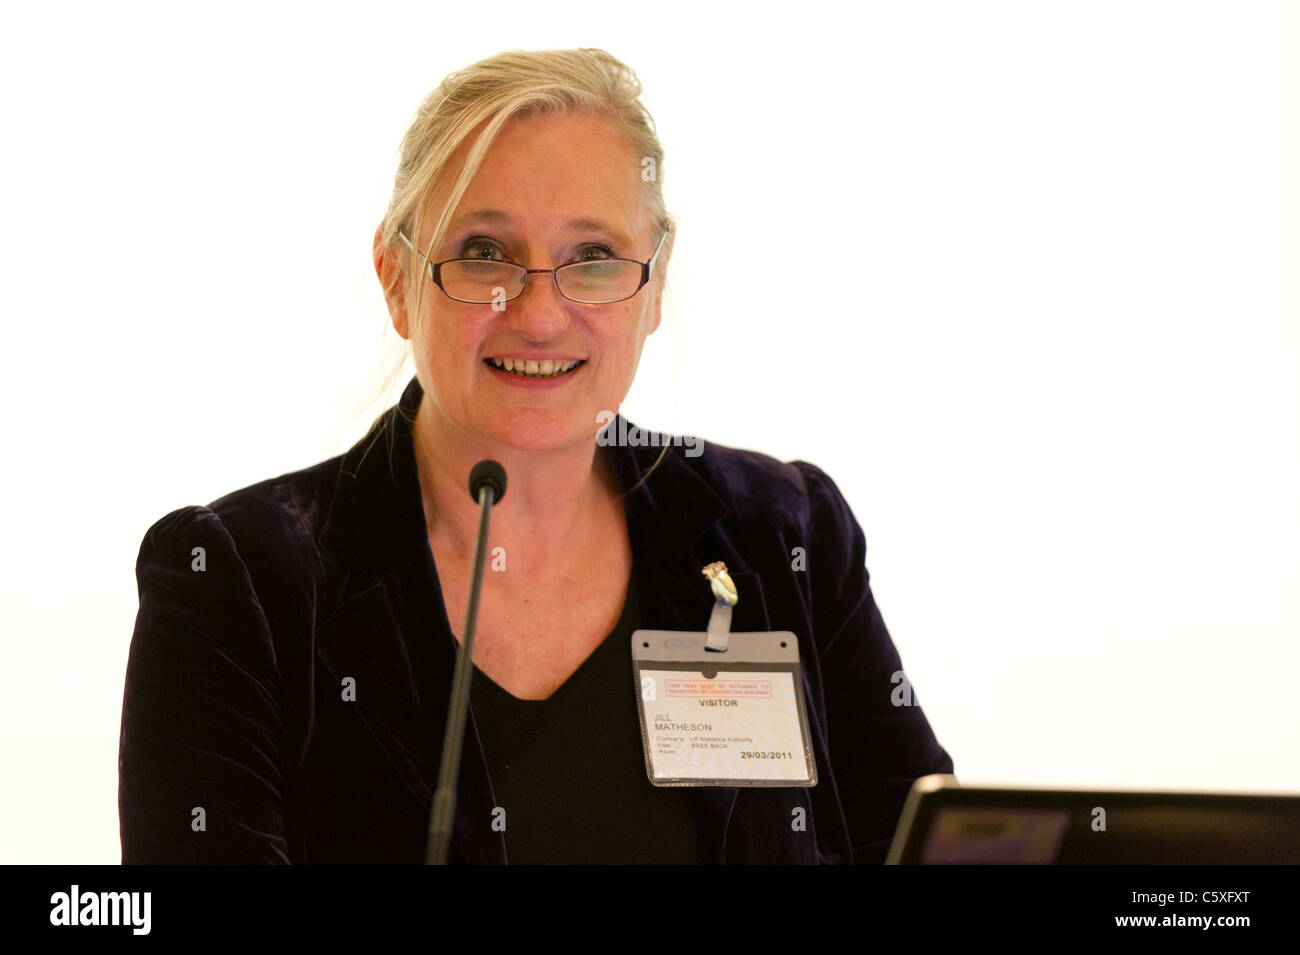 Jil Matheson, UK National Statistician, in London at the launch of the Secure Data Service. - Stock Image